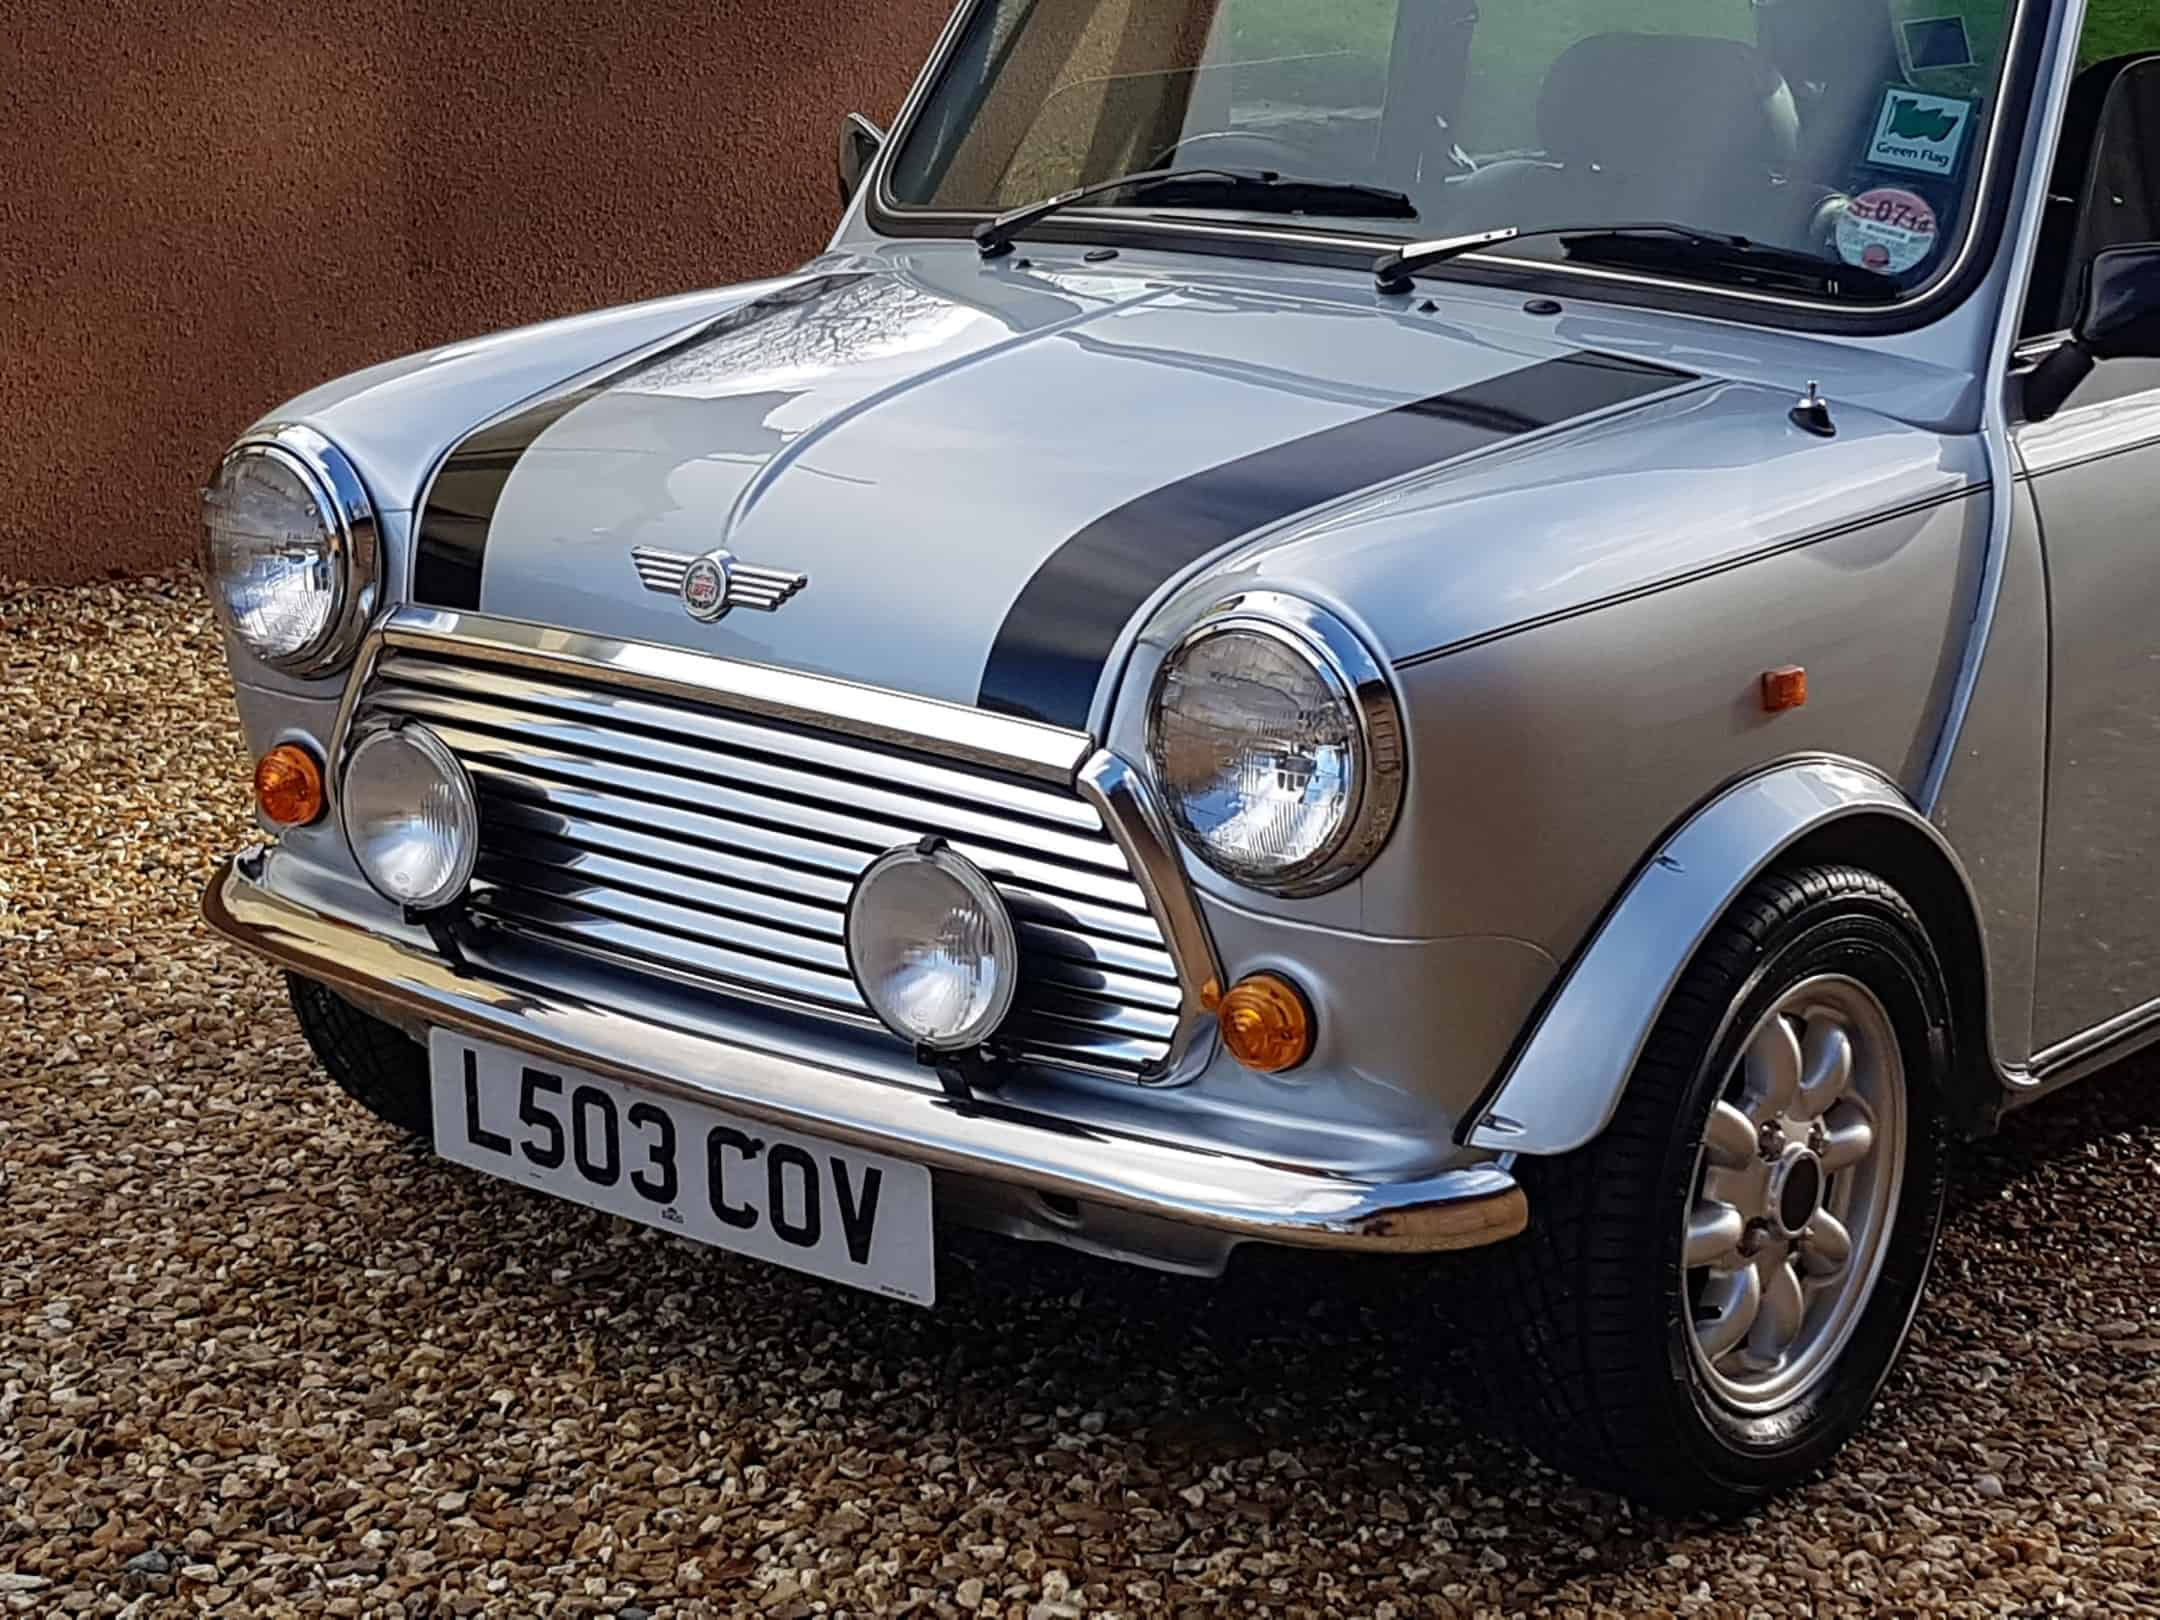 ** NOW SOLD ** 1993 Rover Mini Cooper In Quicksilver On 14900 Miles From New